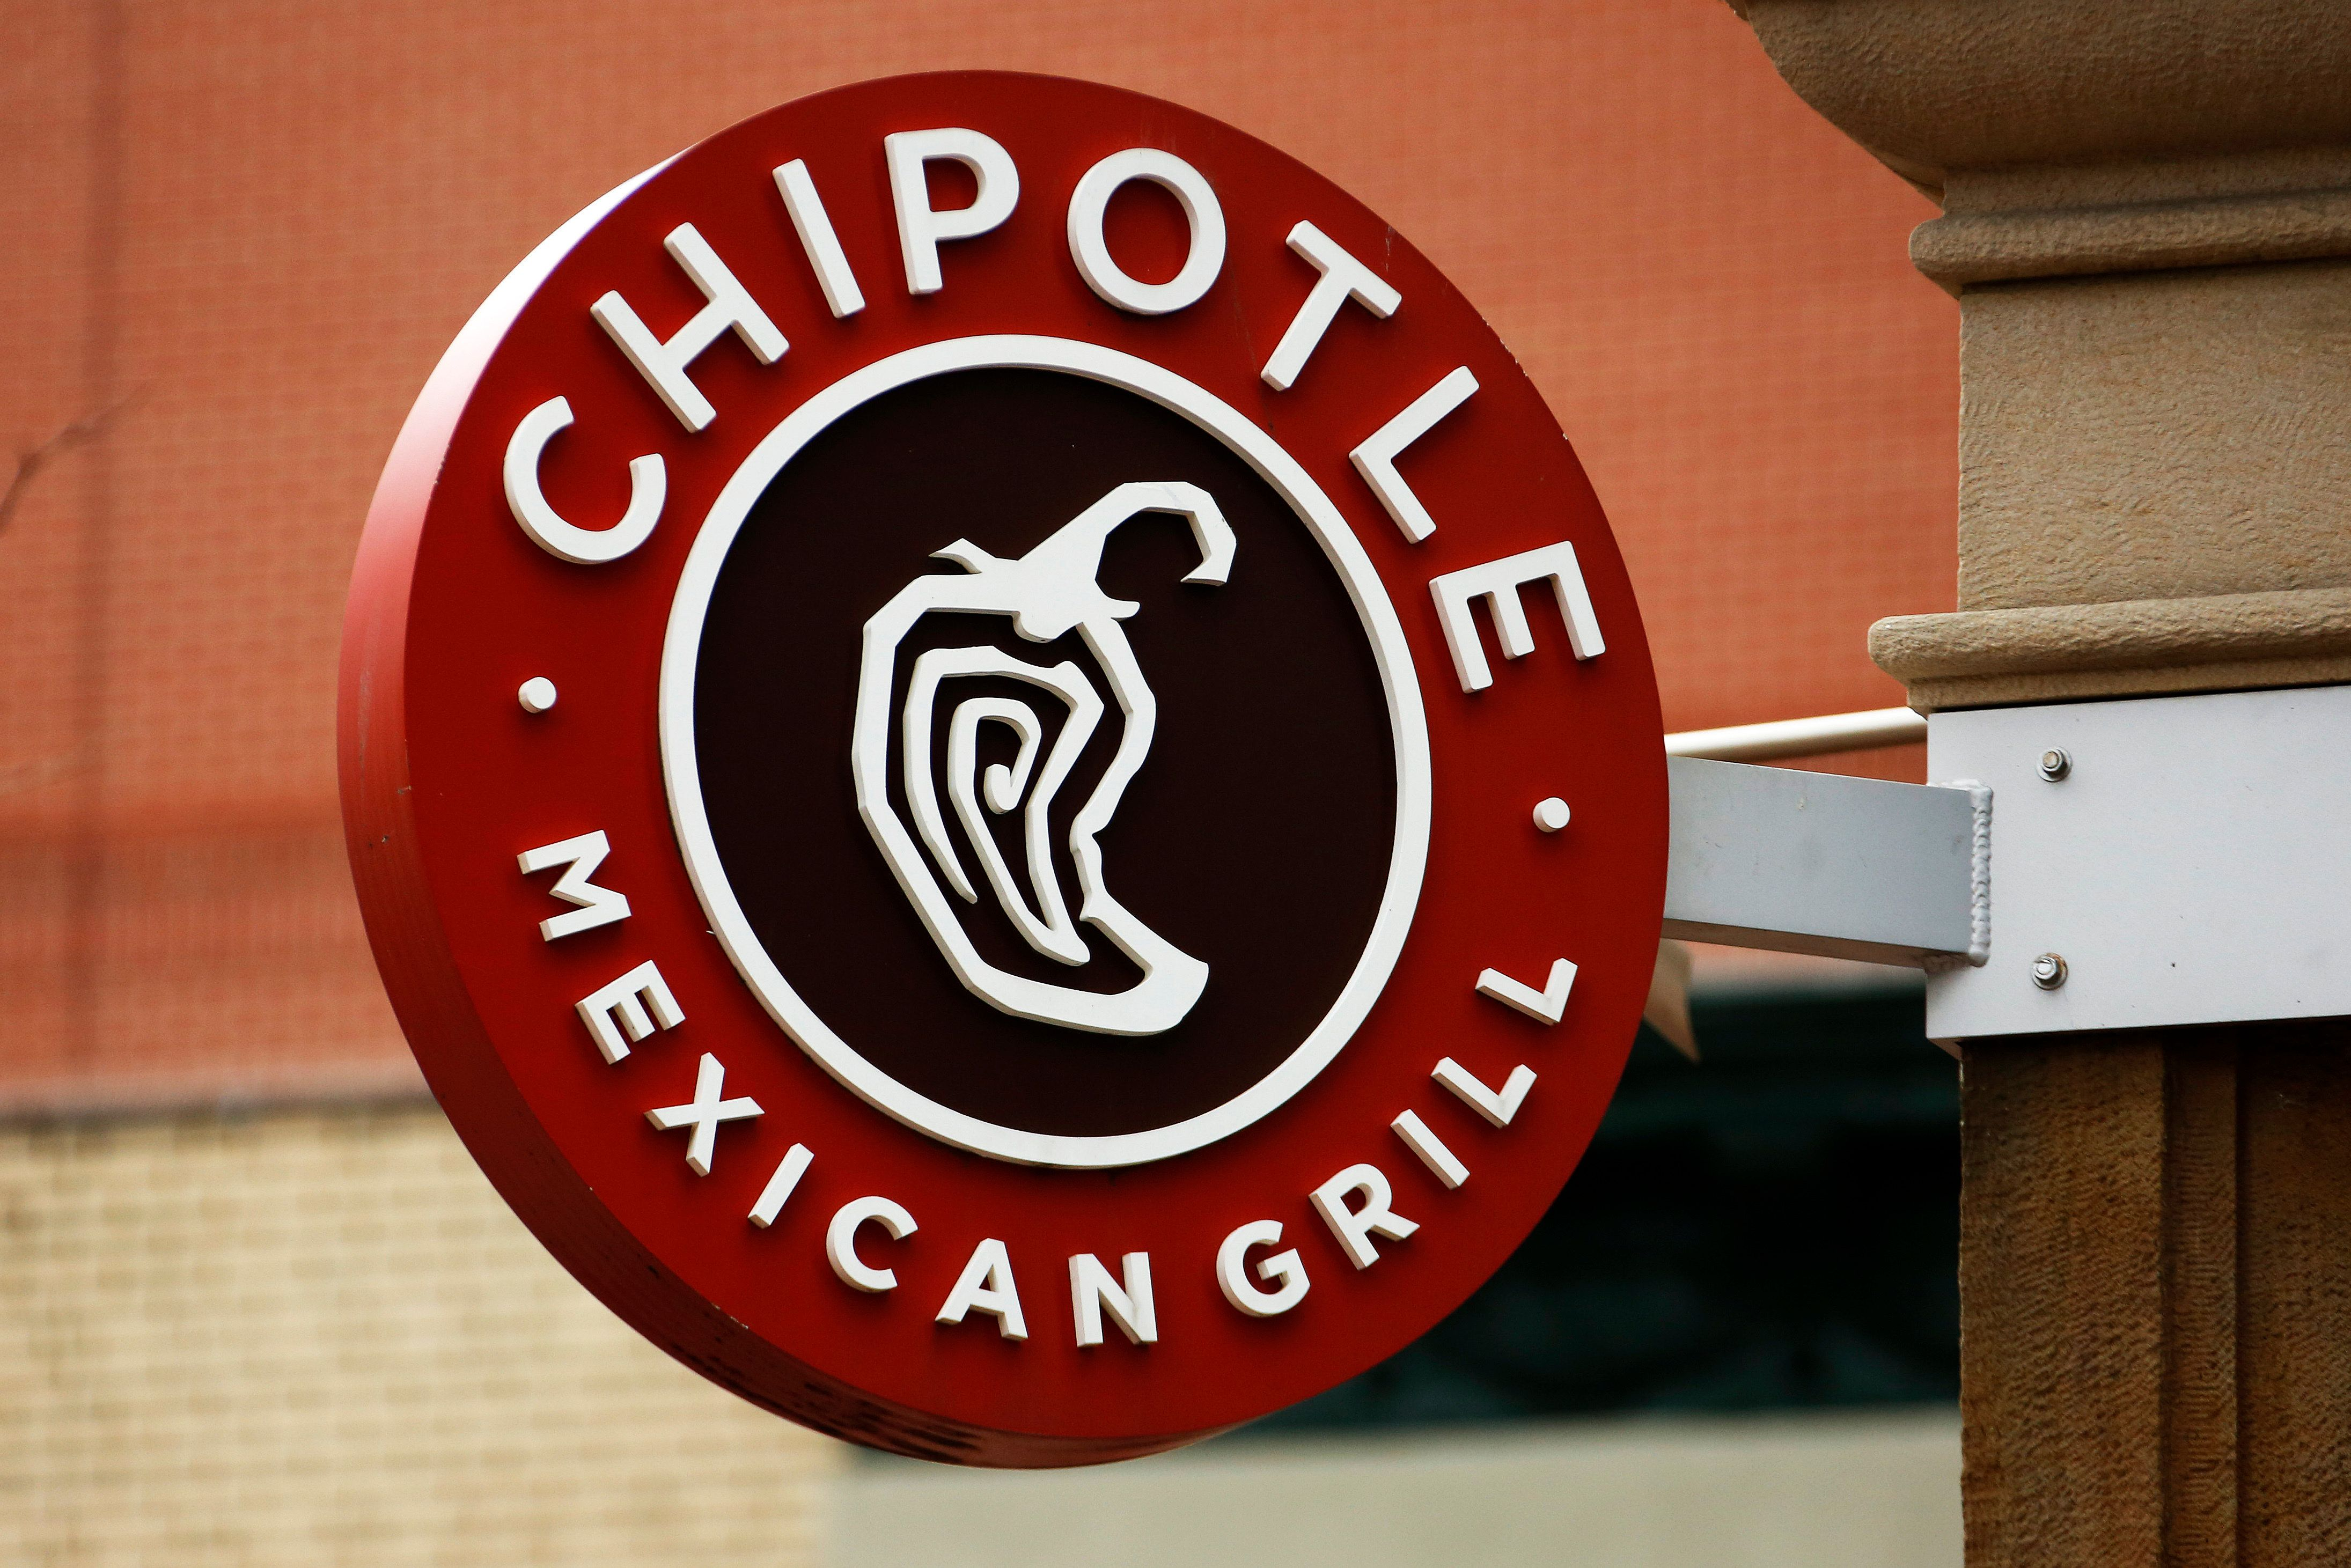 Chipotle Apologizes To Fired Manager And Offers Her Job